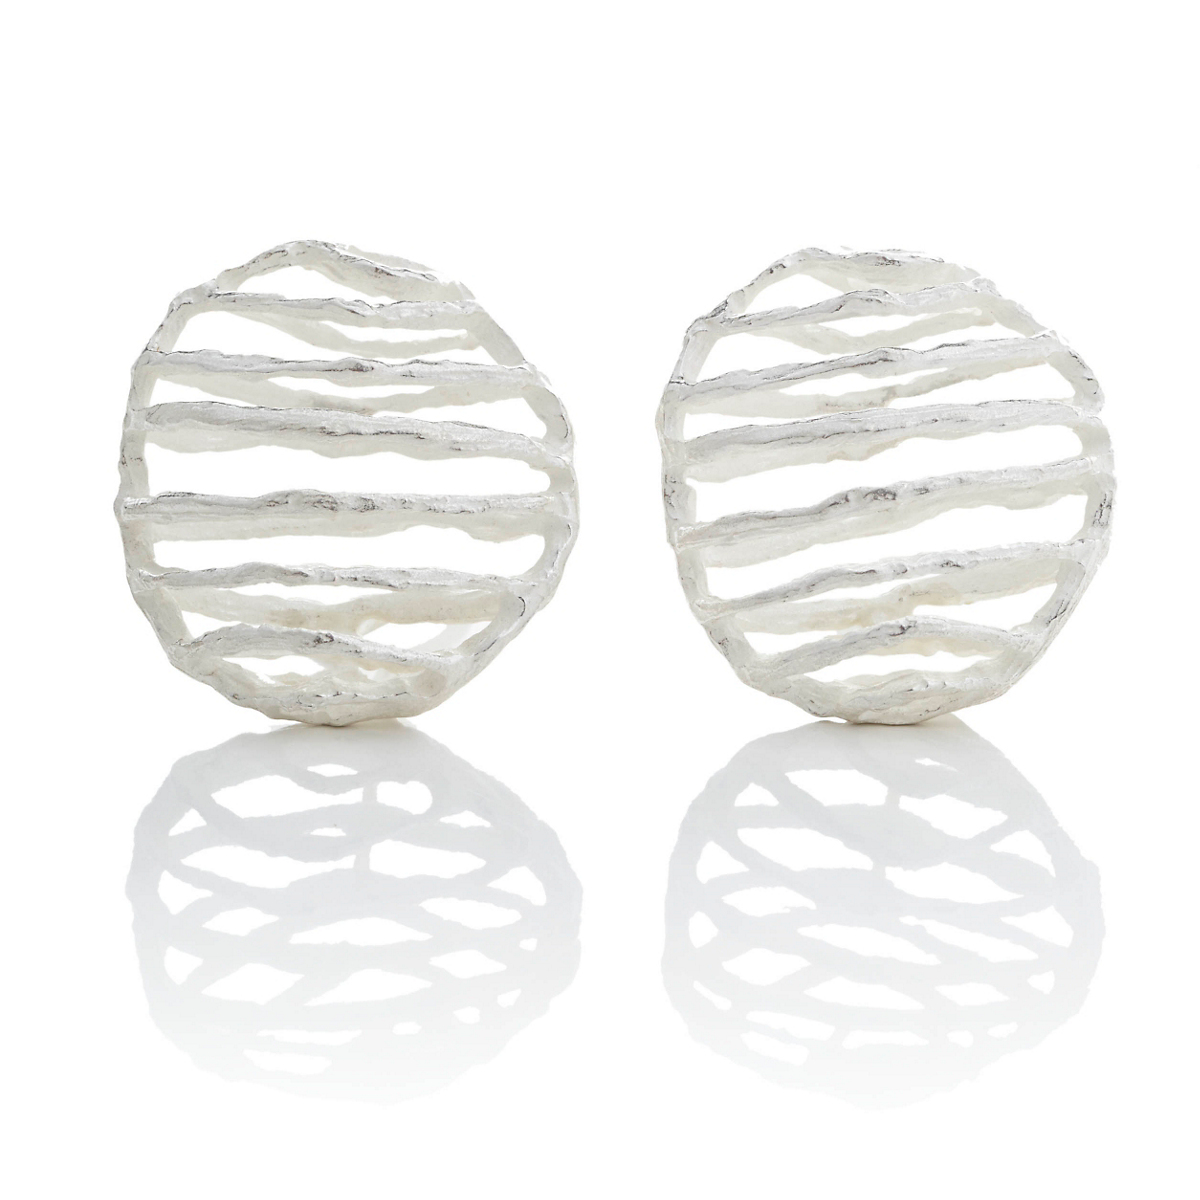 John Iversen Small Sterling Silver Basket Earrings